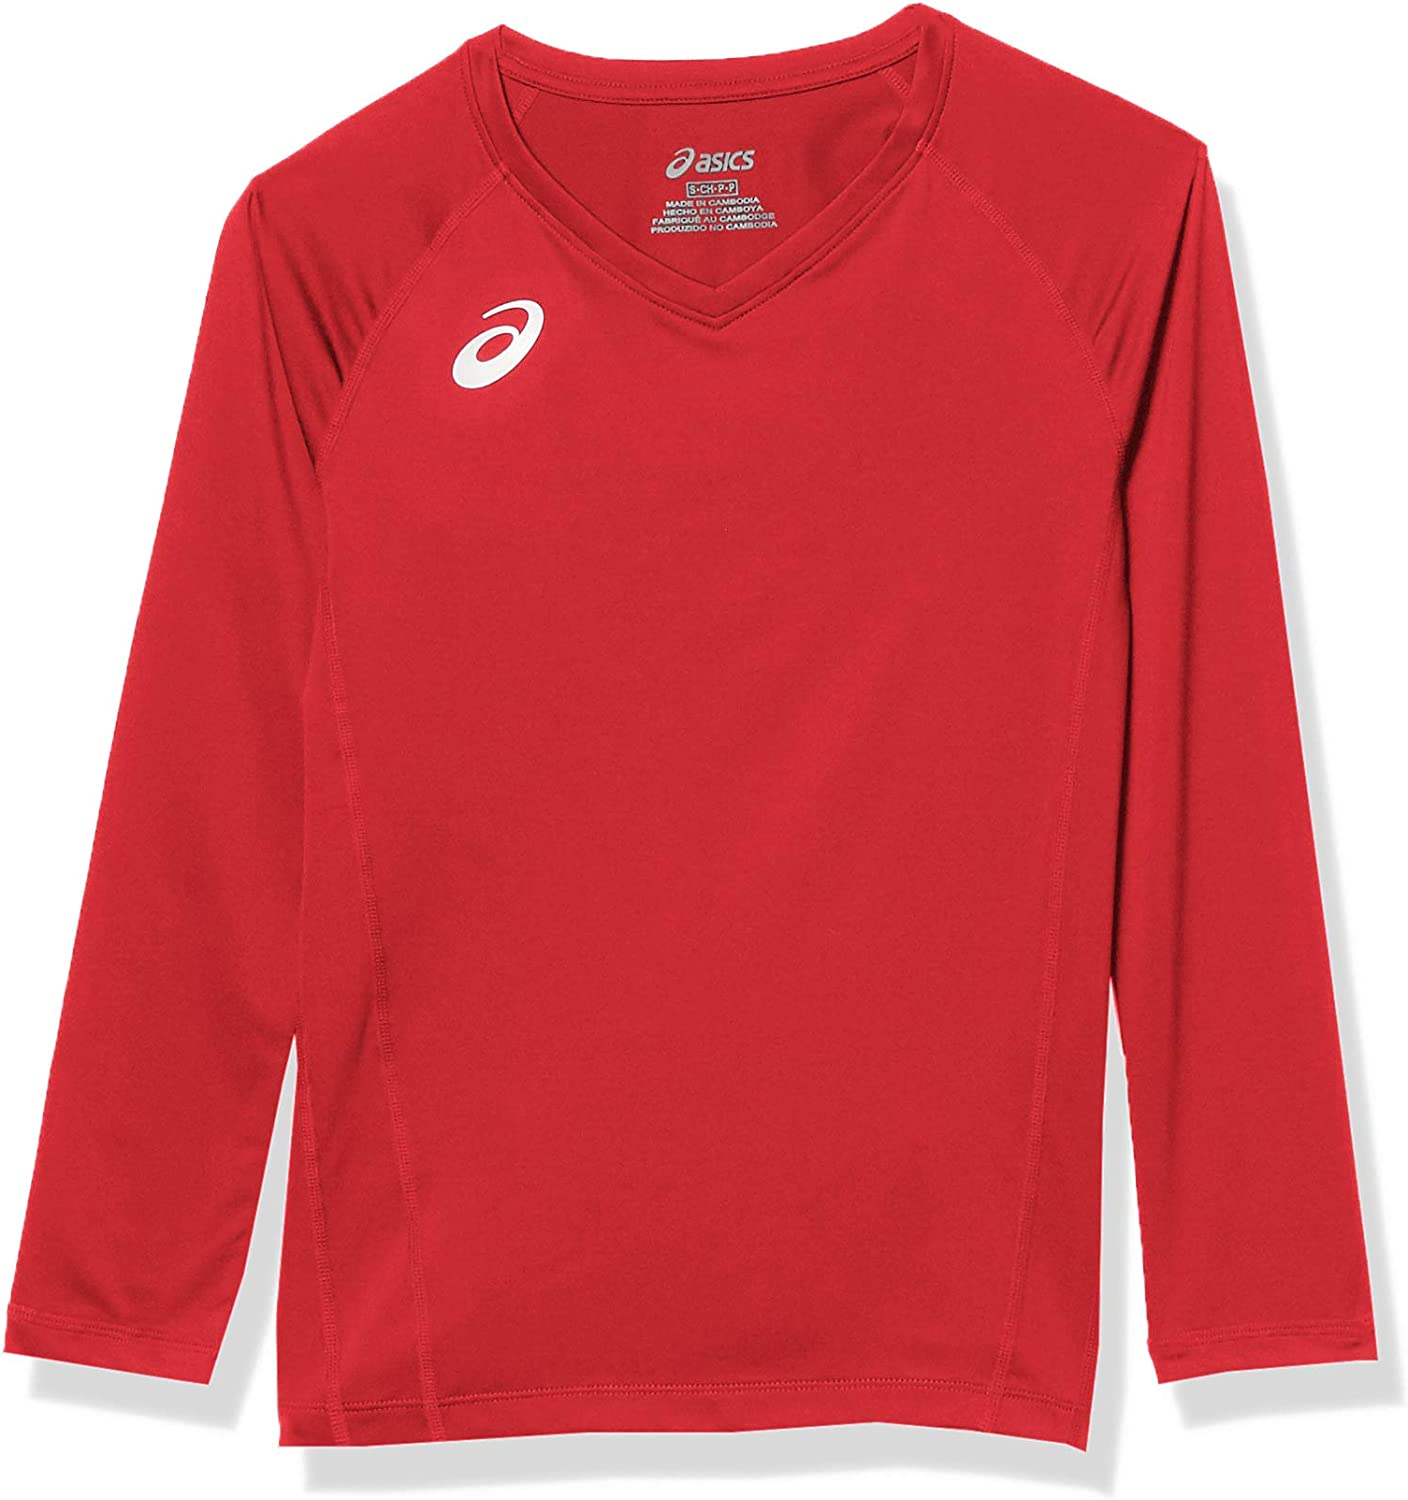 ASICS Girls' Youth Spin Serve Limited price sale Jersey Volleyball Short service Sleeve